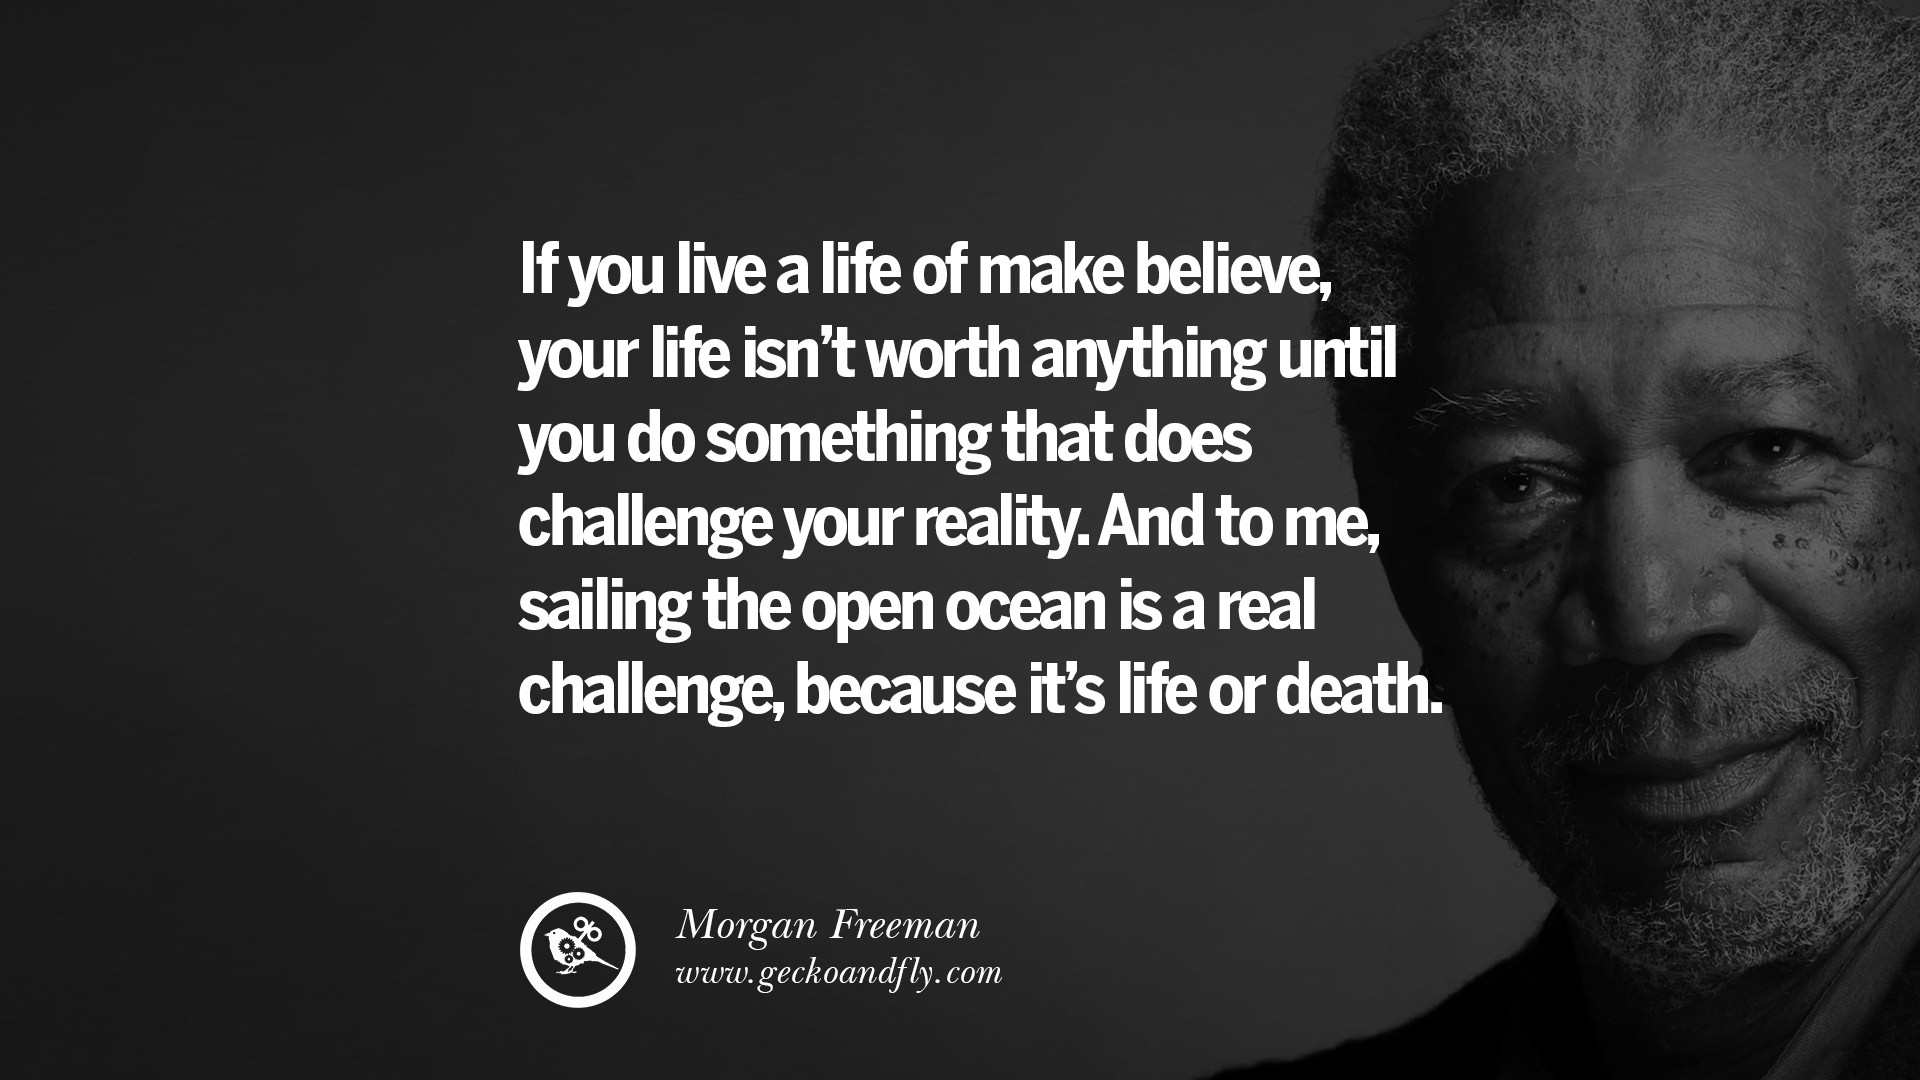 Interesting Quotes About Life 10 Morgan Freeman Quotes On Life Death Success And Struggle